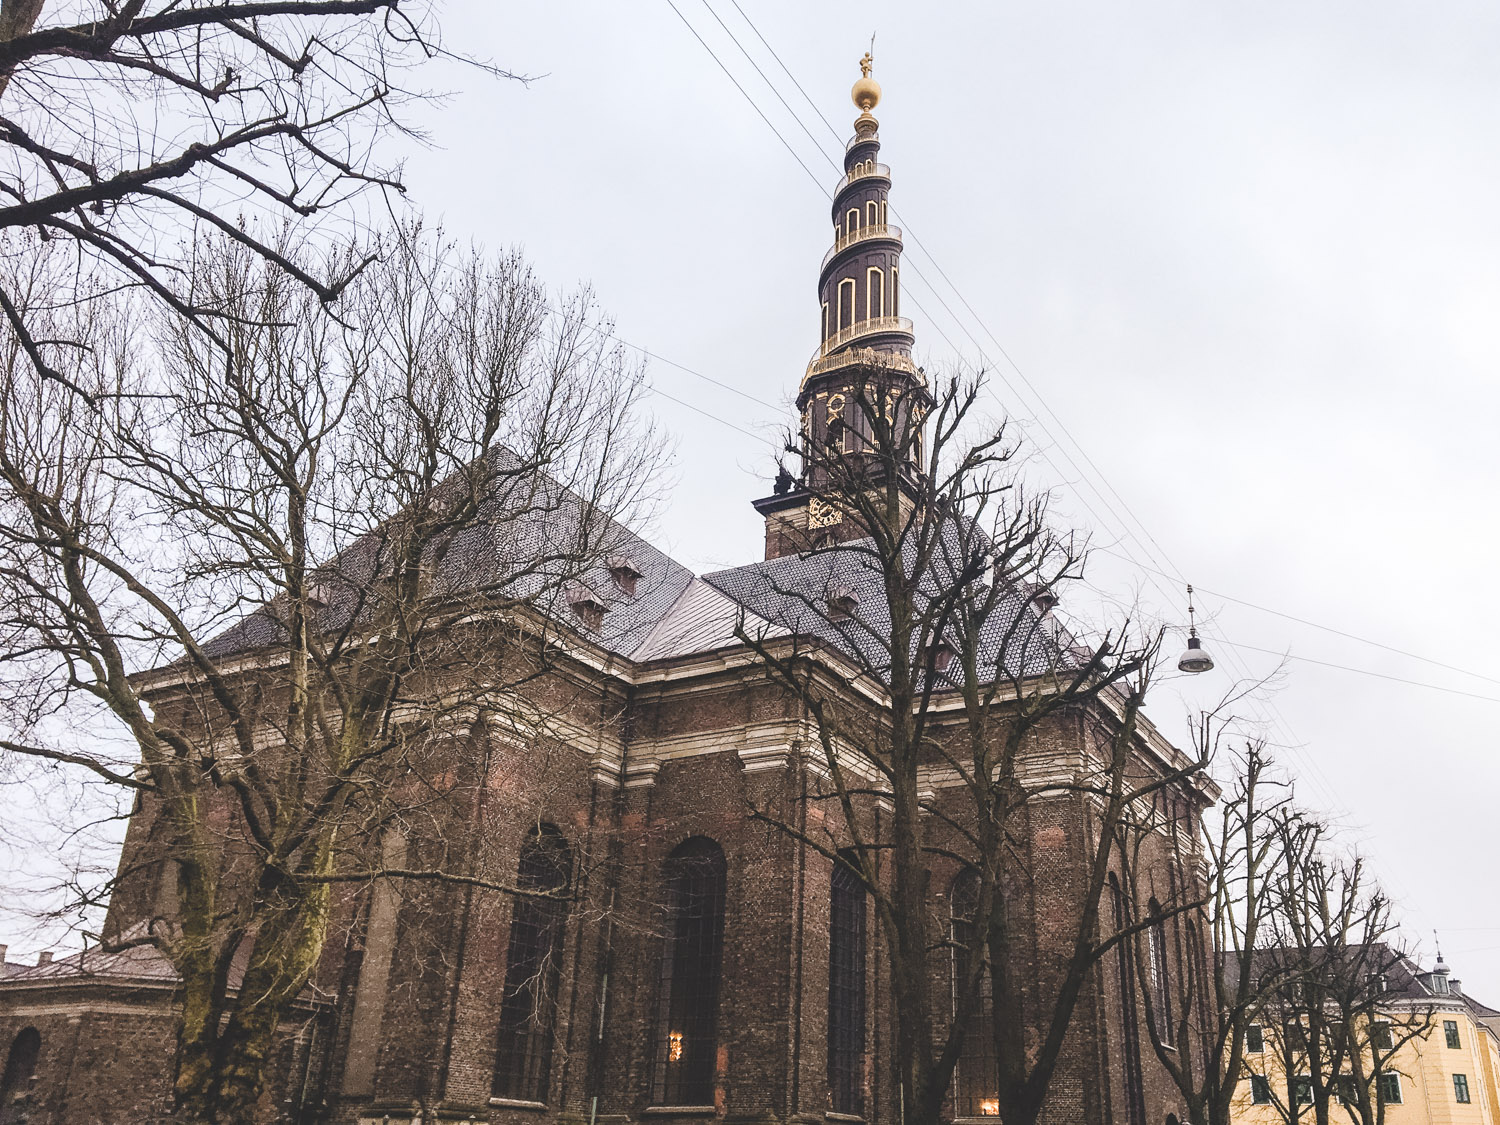 The Church of Our Savior in Copenhagen is unique and has a spiral top - it's free to enter and something to add to your winter Copenhagen itinerary!